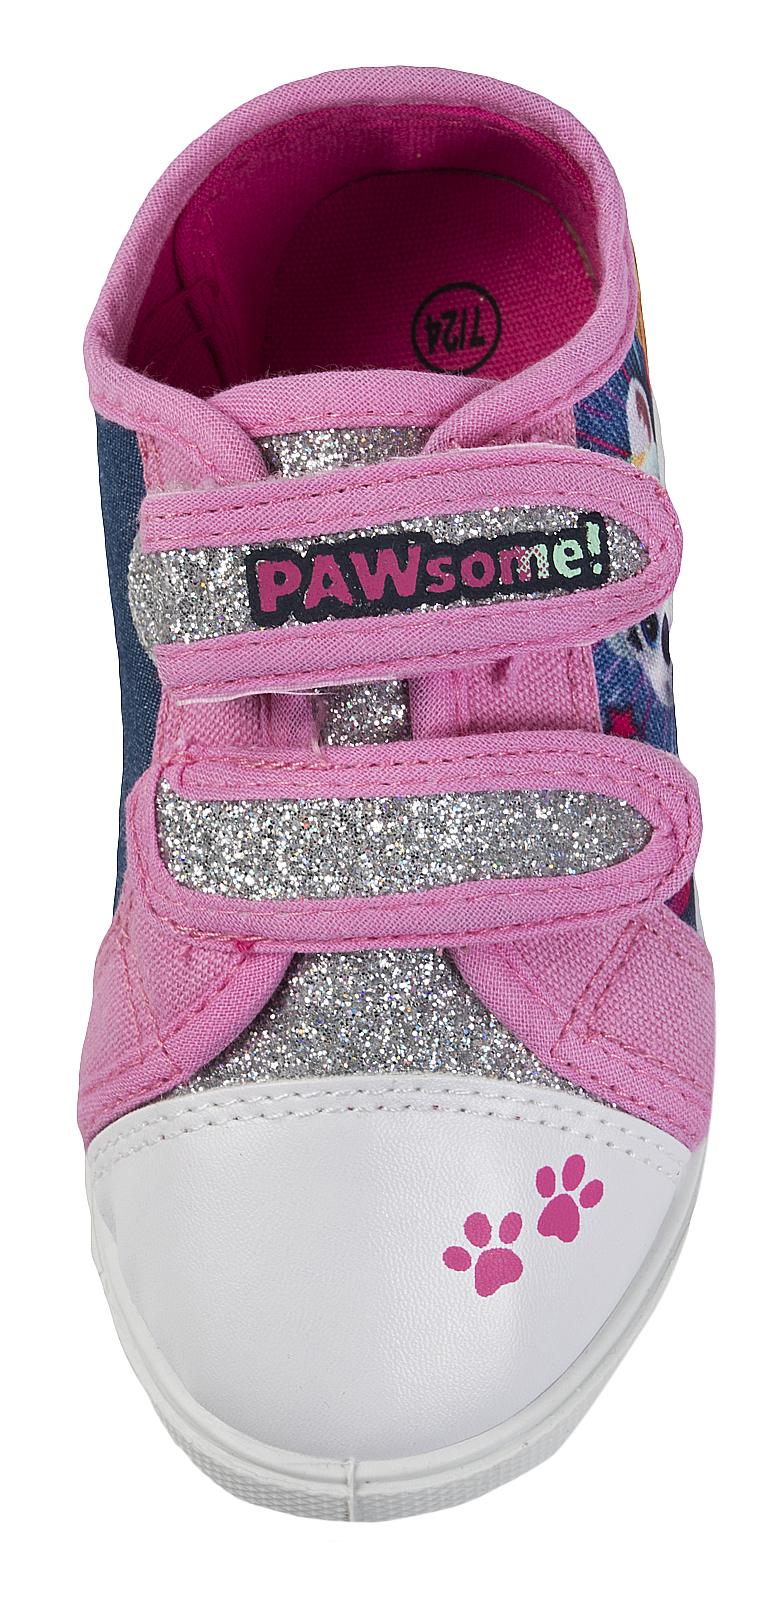 Paw Patrol Skate Shoes Skye Everest Canvas Pumps Girls Sports Trainers Size